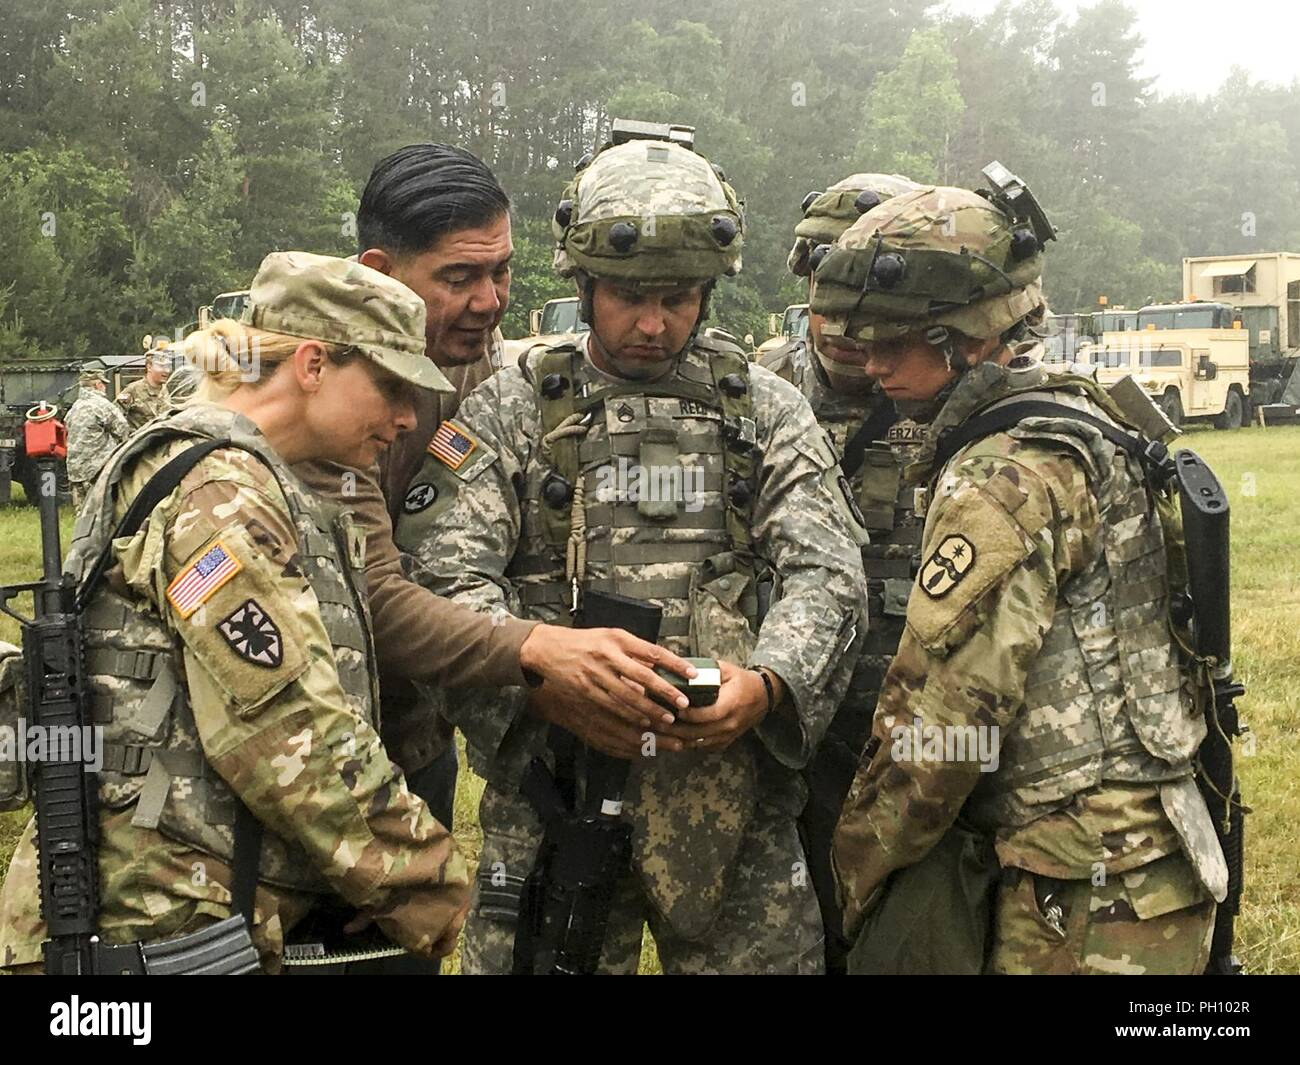 1487th Transportation Company High Resolution Stock Photography And Images Alamy